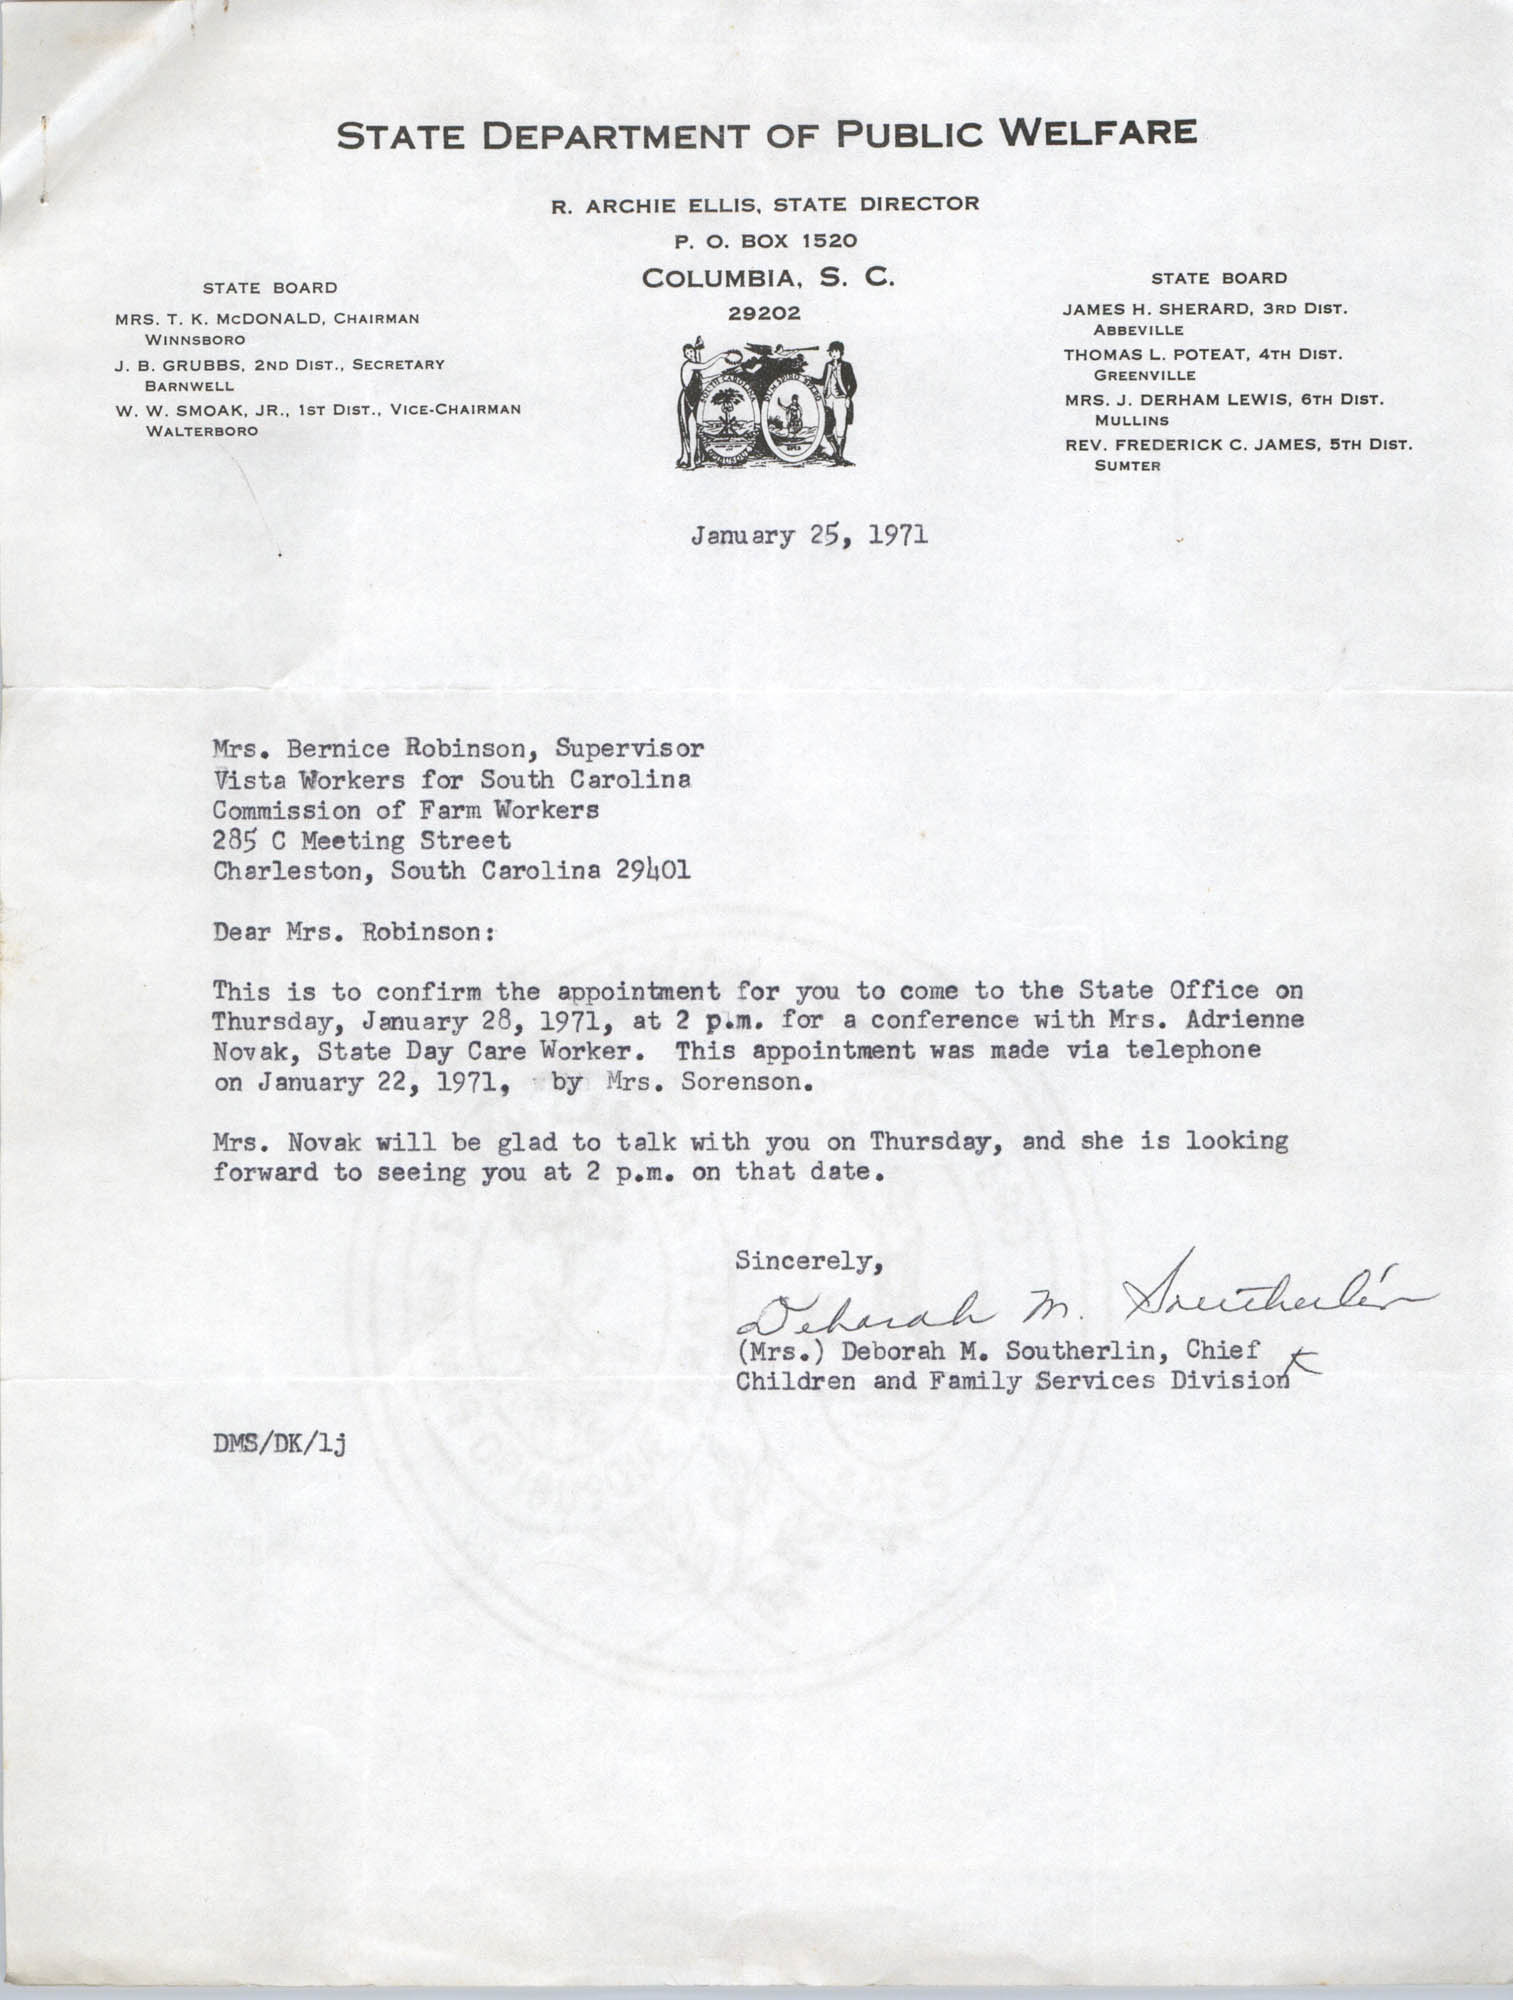 Letter from Deborah M. Southerlin to Bernice Robinson, January 25, 1971